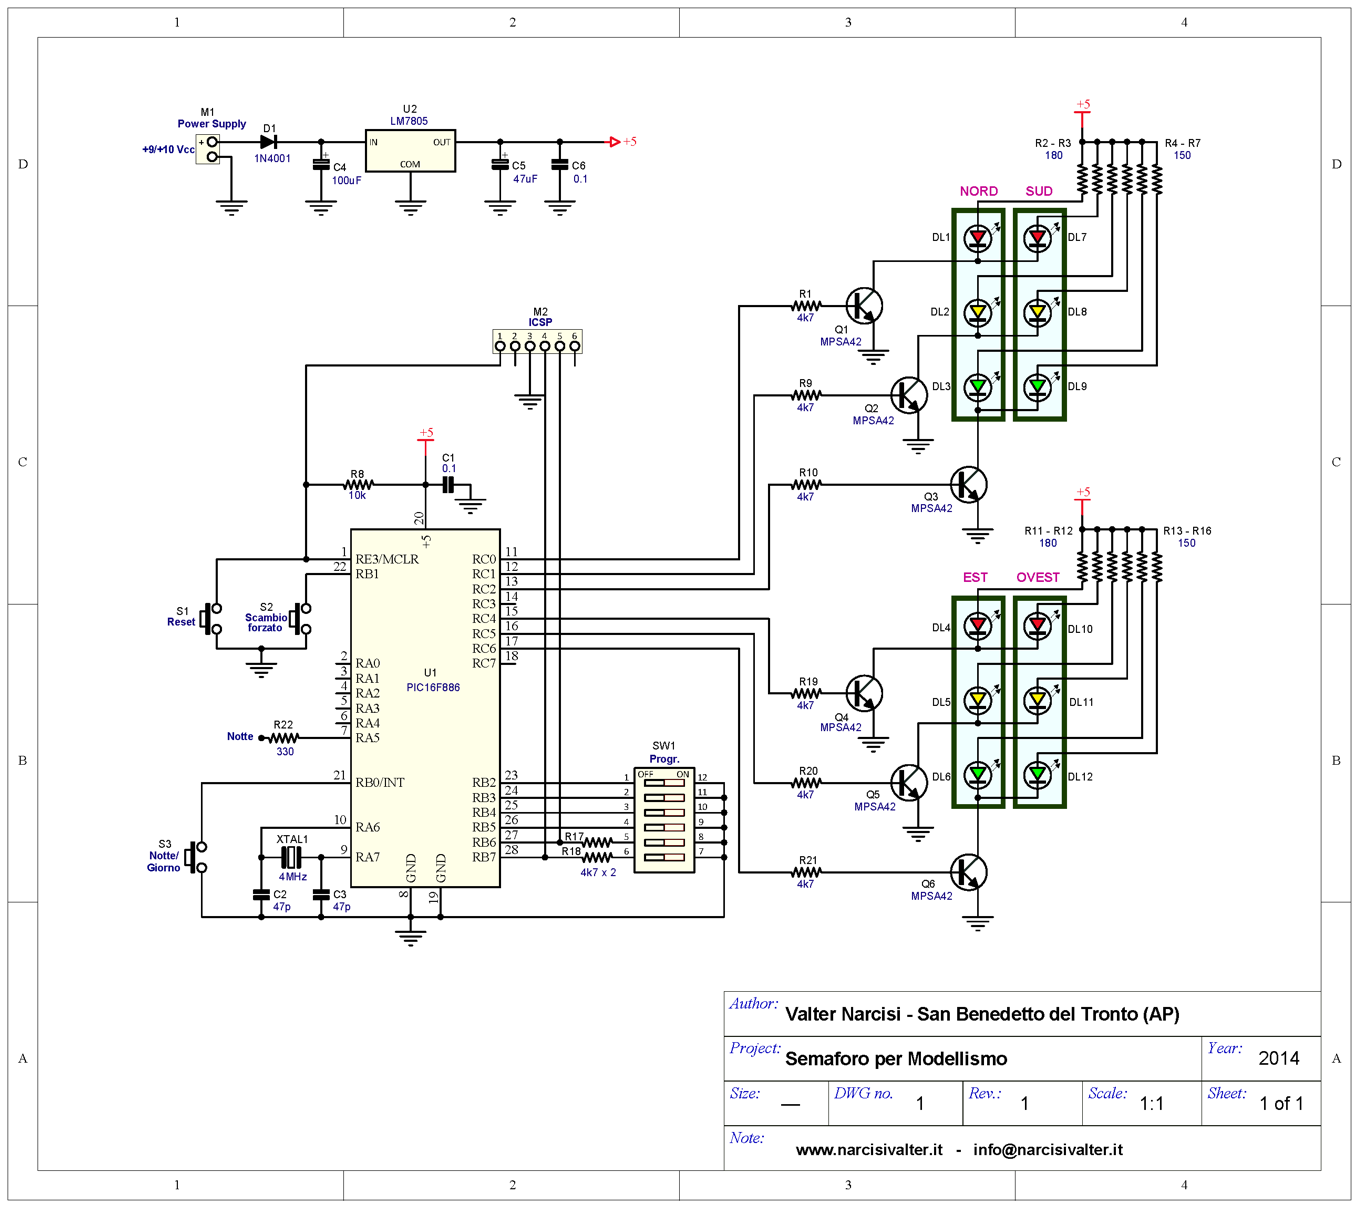 Schemi Elettrici Fermodellismo : Way traffic light for modeling semaforo per modellismo